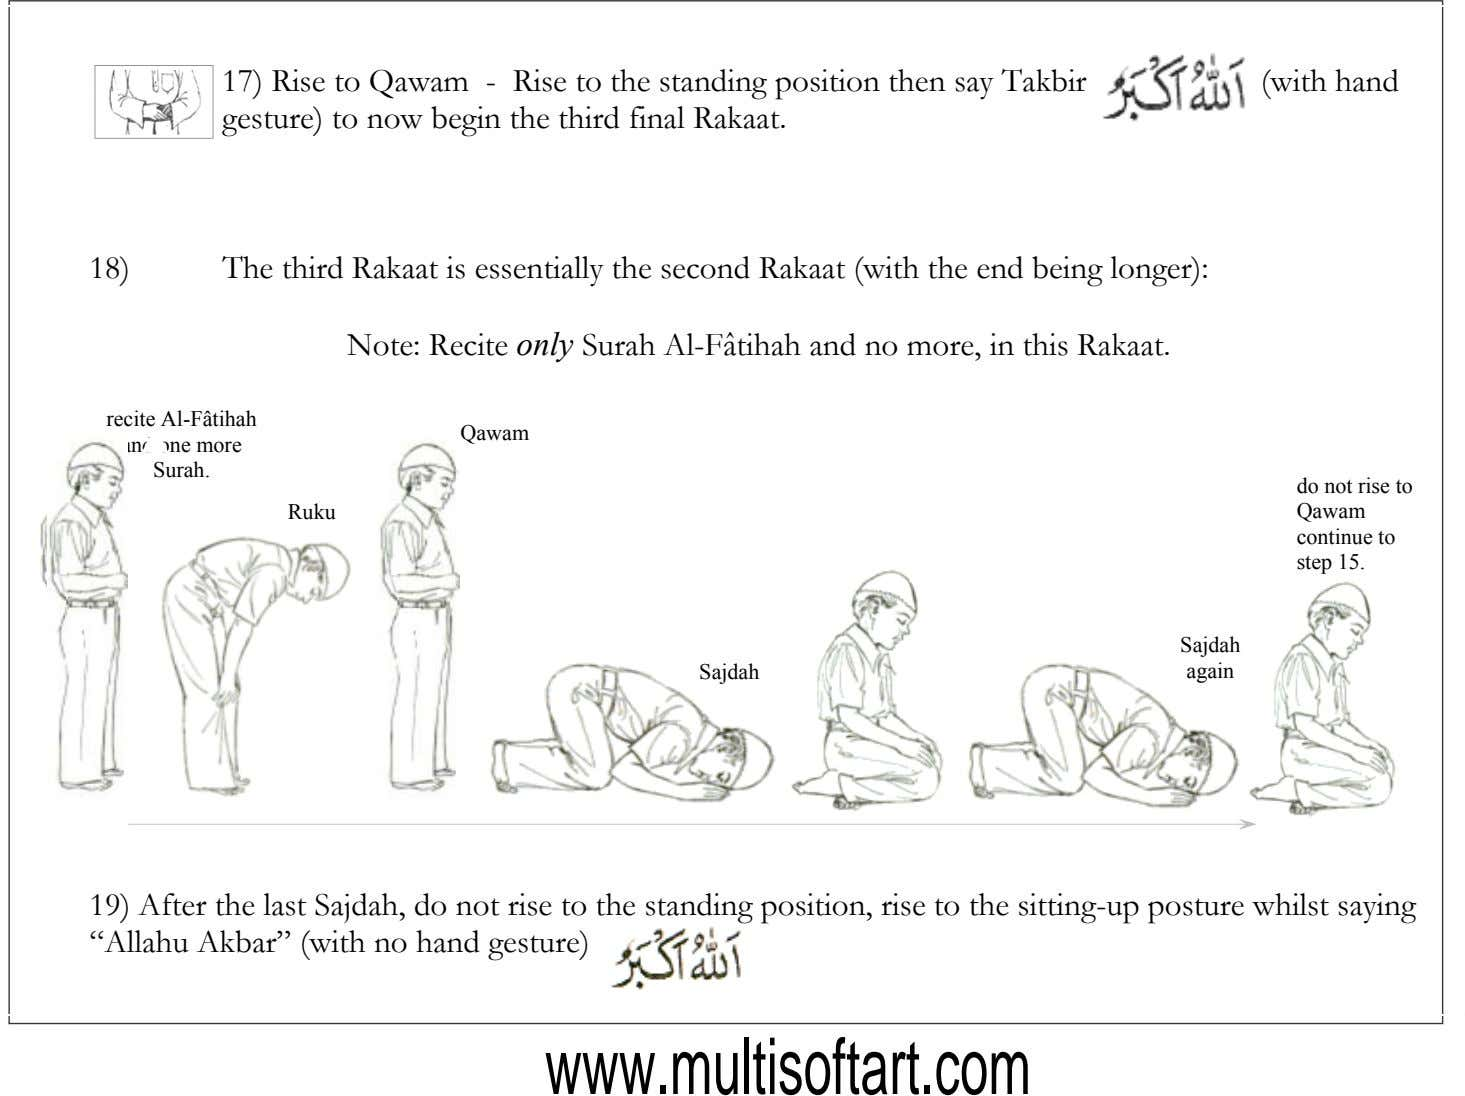 17) Rise to Qawam - Rise to the standing position then say Takbir gesture) to now